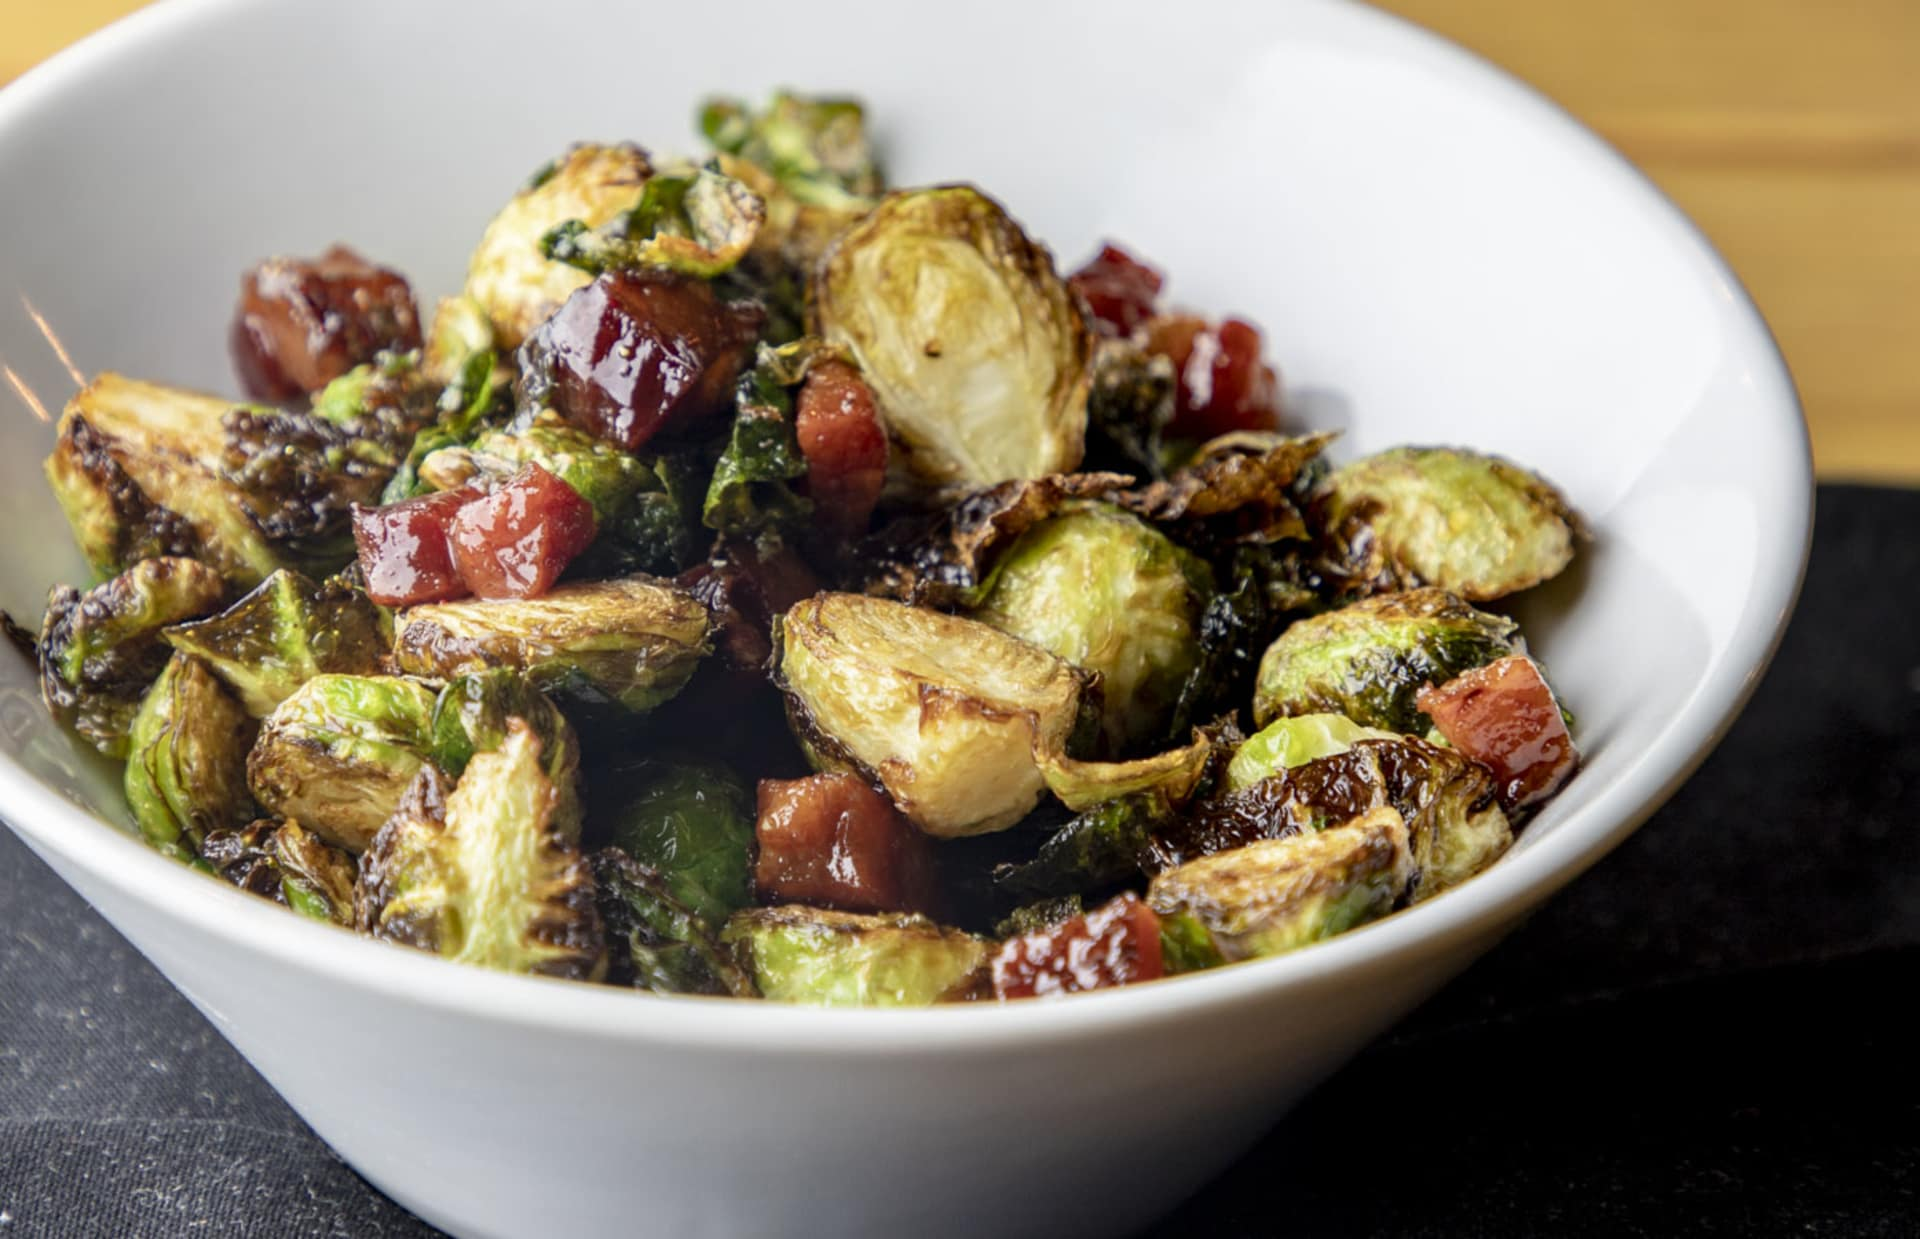 PAN ROASTED BRUSSELS SPROUTS WITH LARDDNS